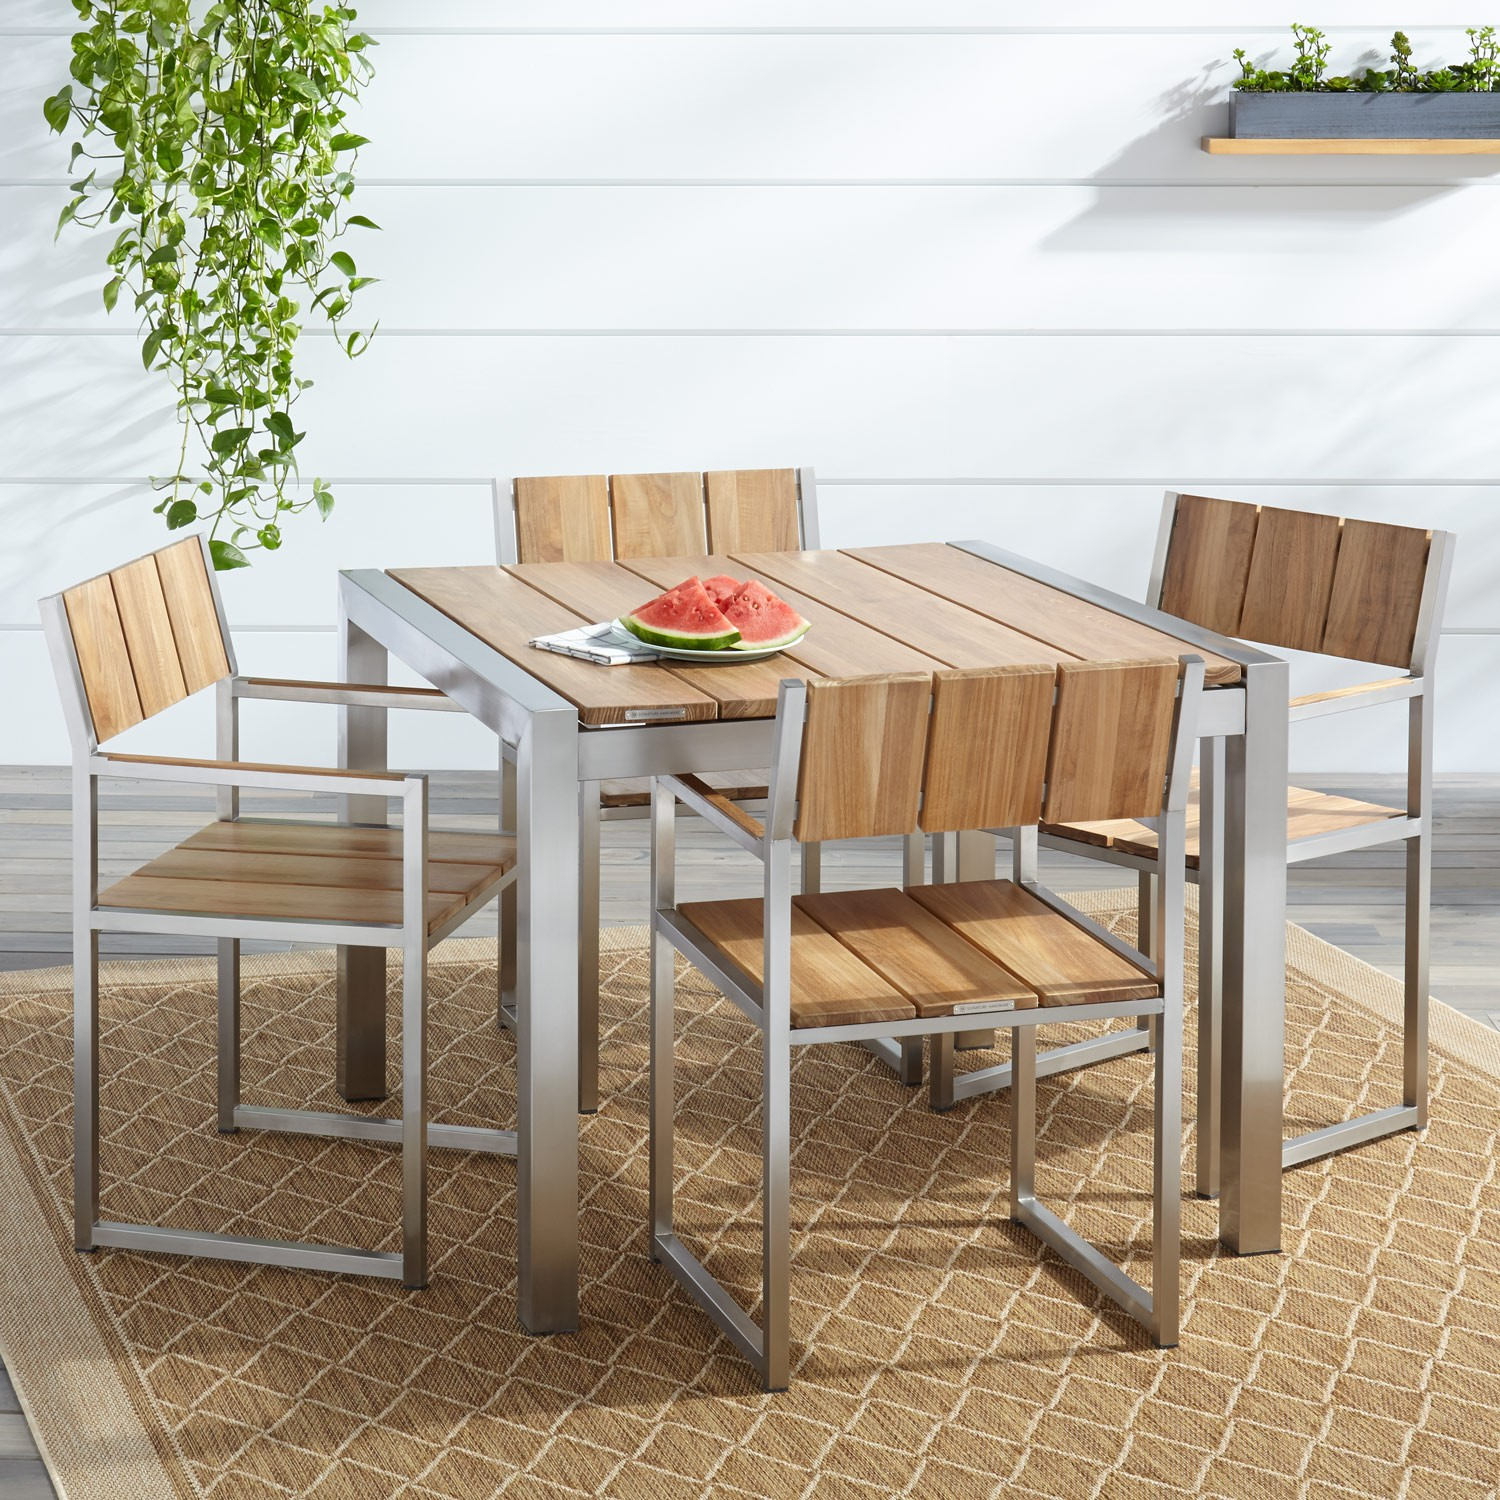 Macon 5-Piece Square Teak Outdoor Dining Table Set - Natural Teak ...